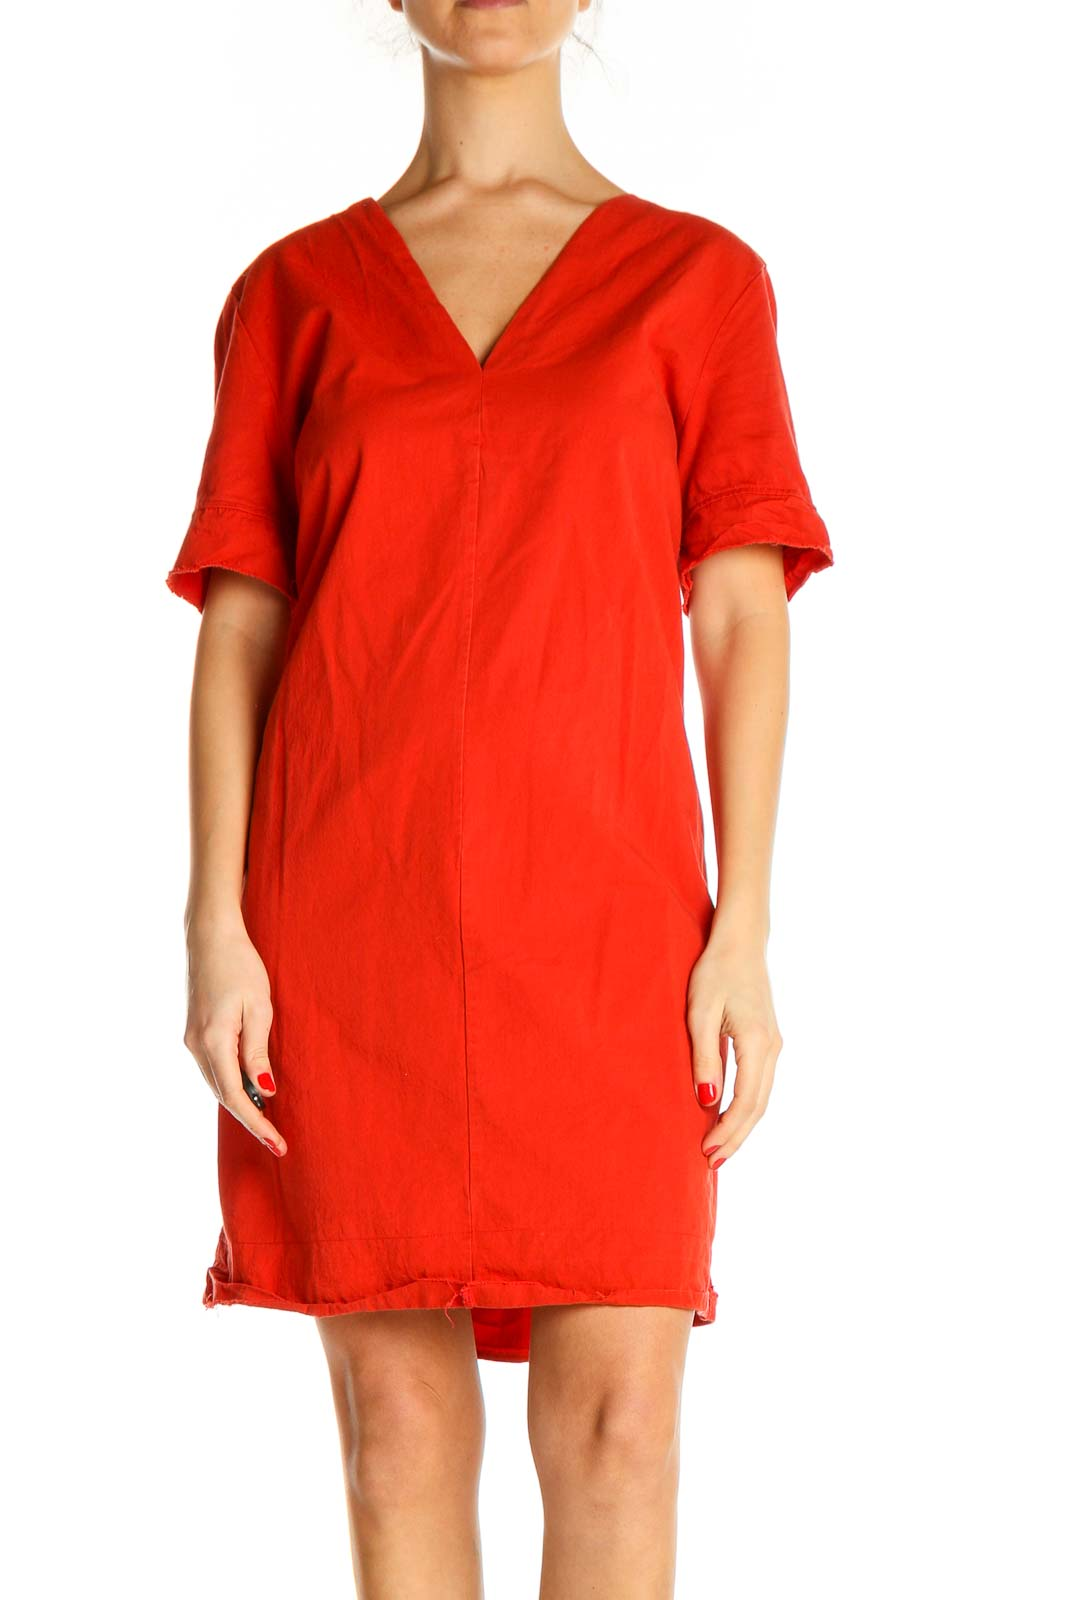 Orange Solid Casual Dress Front